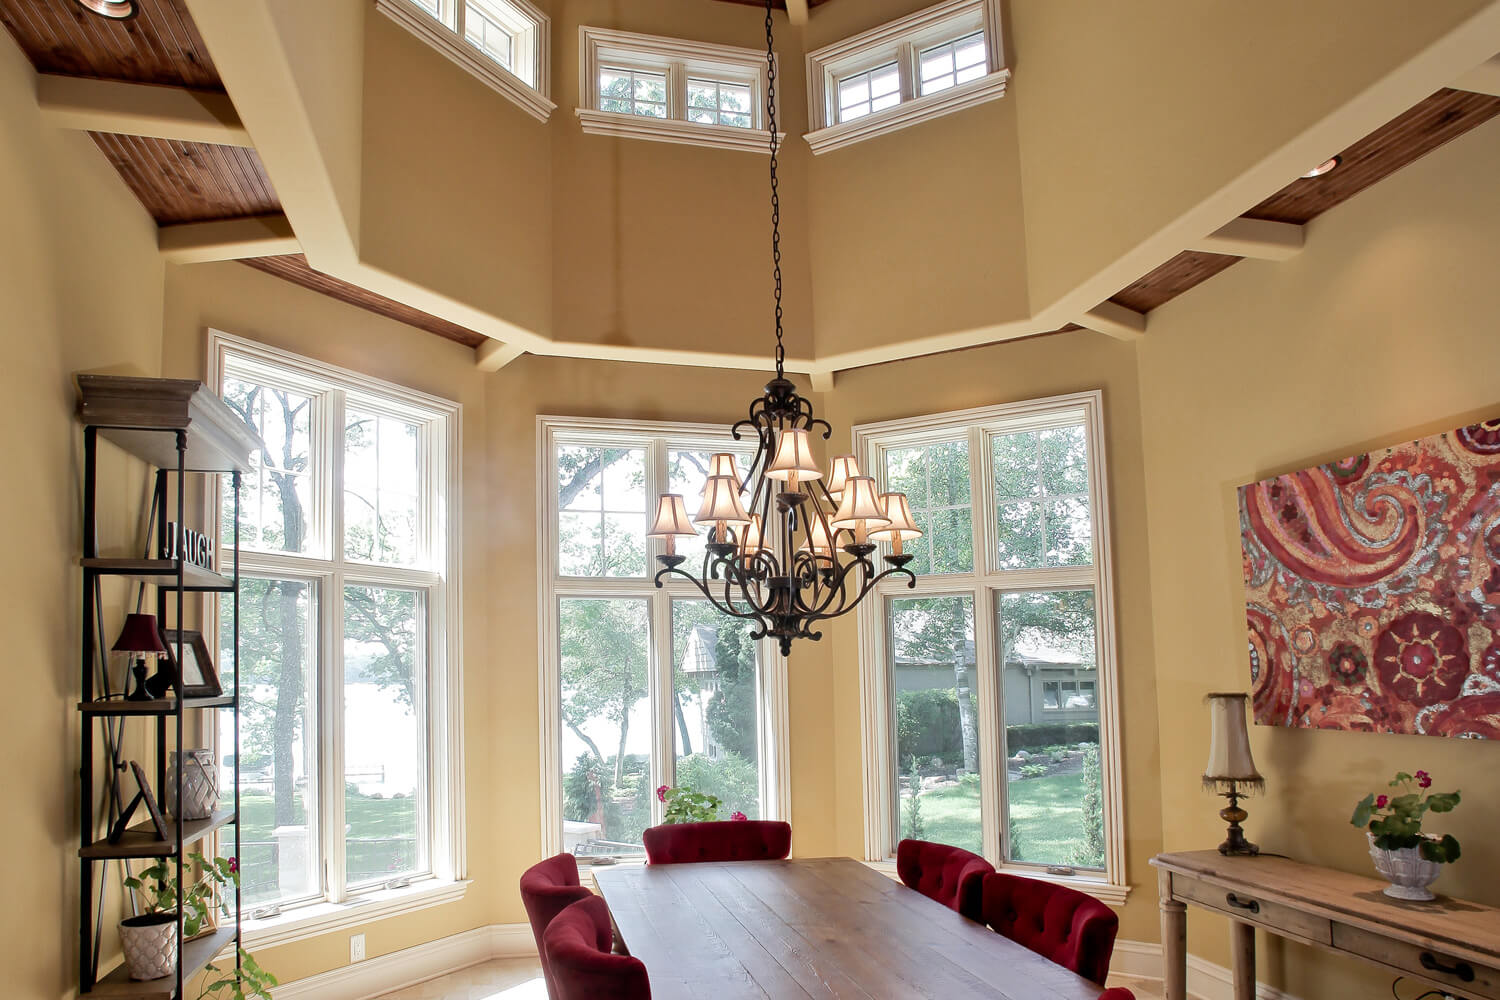 Two Story Dining Room With Wood T G Ceiling Drywall Beams And Stone Floor Windows Gothic Between Gl Grilles Showcasing Beautiful Views Of Beaver